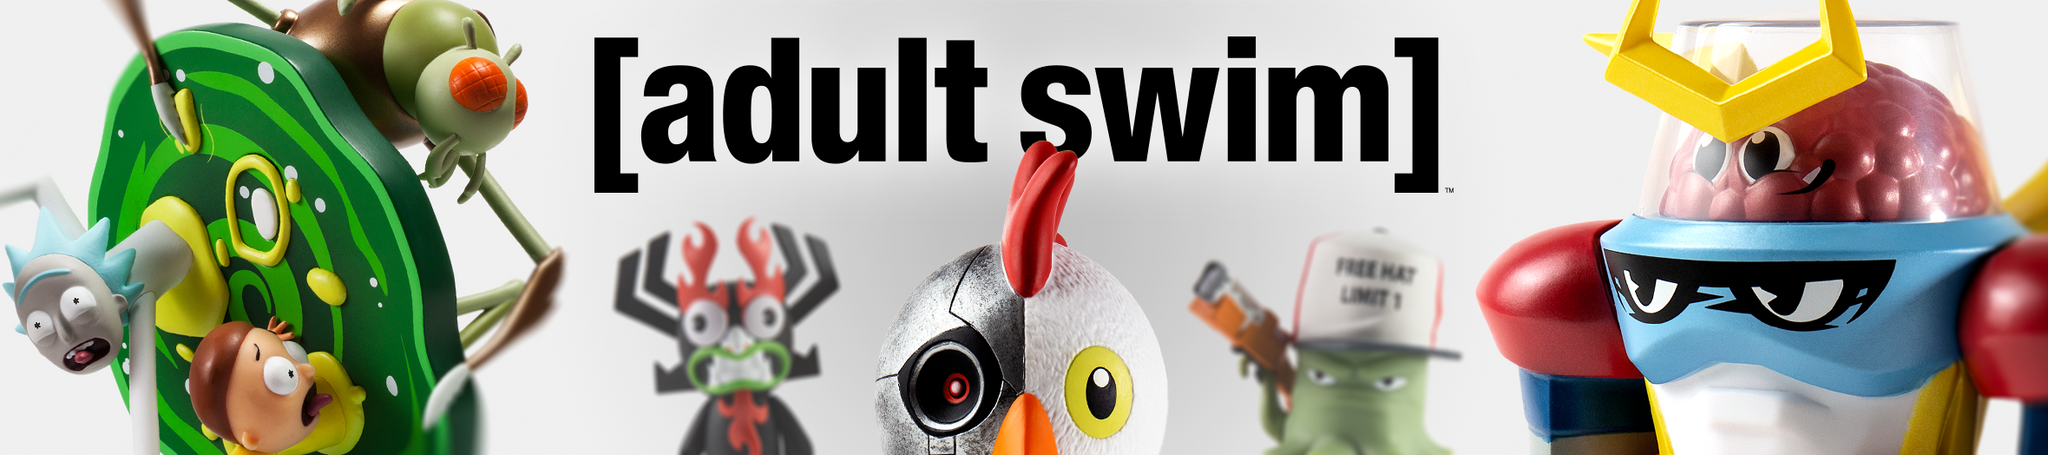 Adult Swim Toys, Figures and Art by Kidrobot